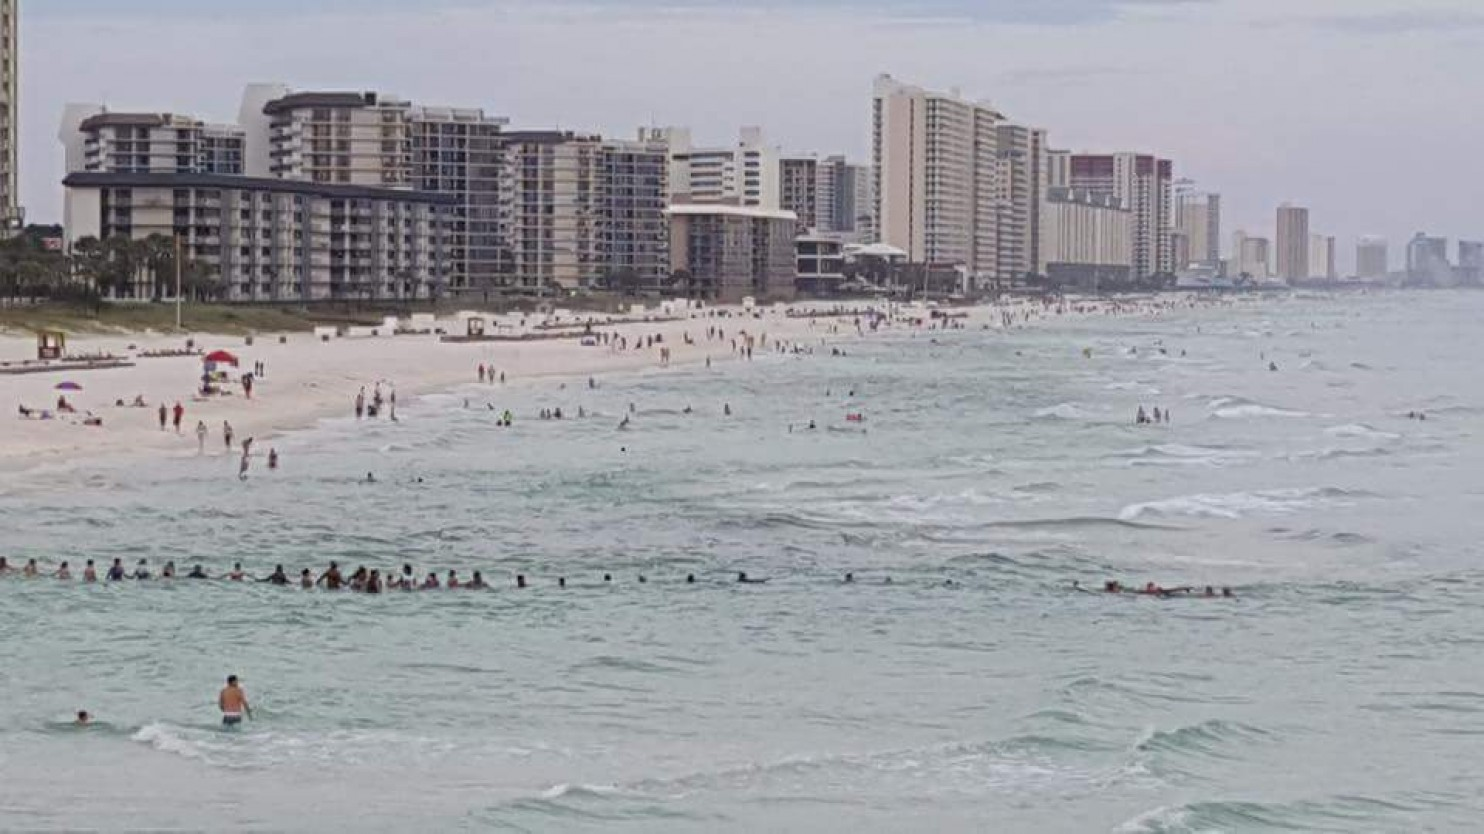 Florida beachgoers form an 80-person human chain to save family